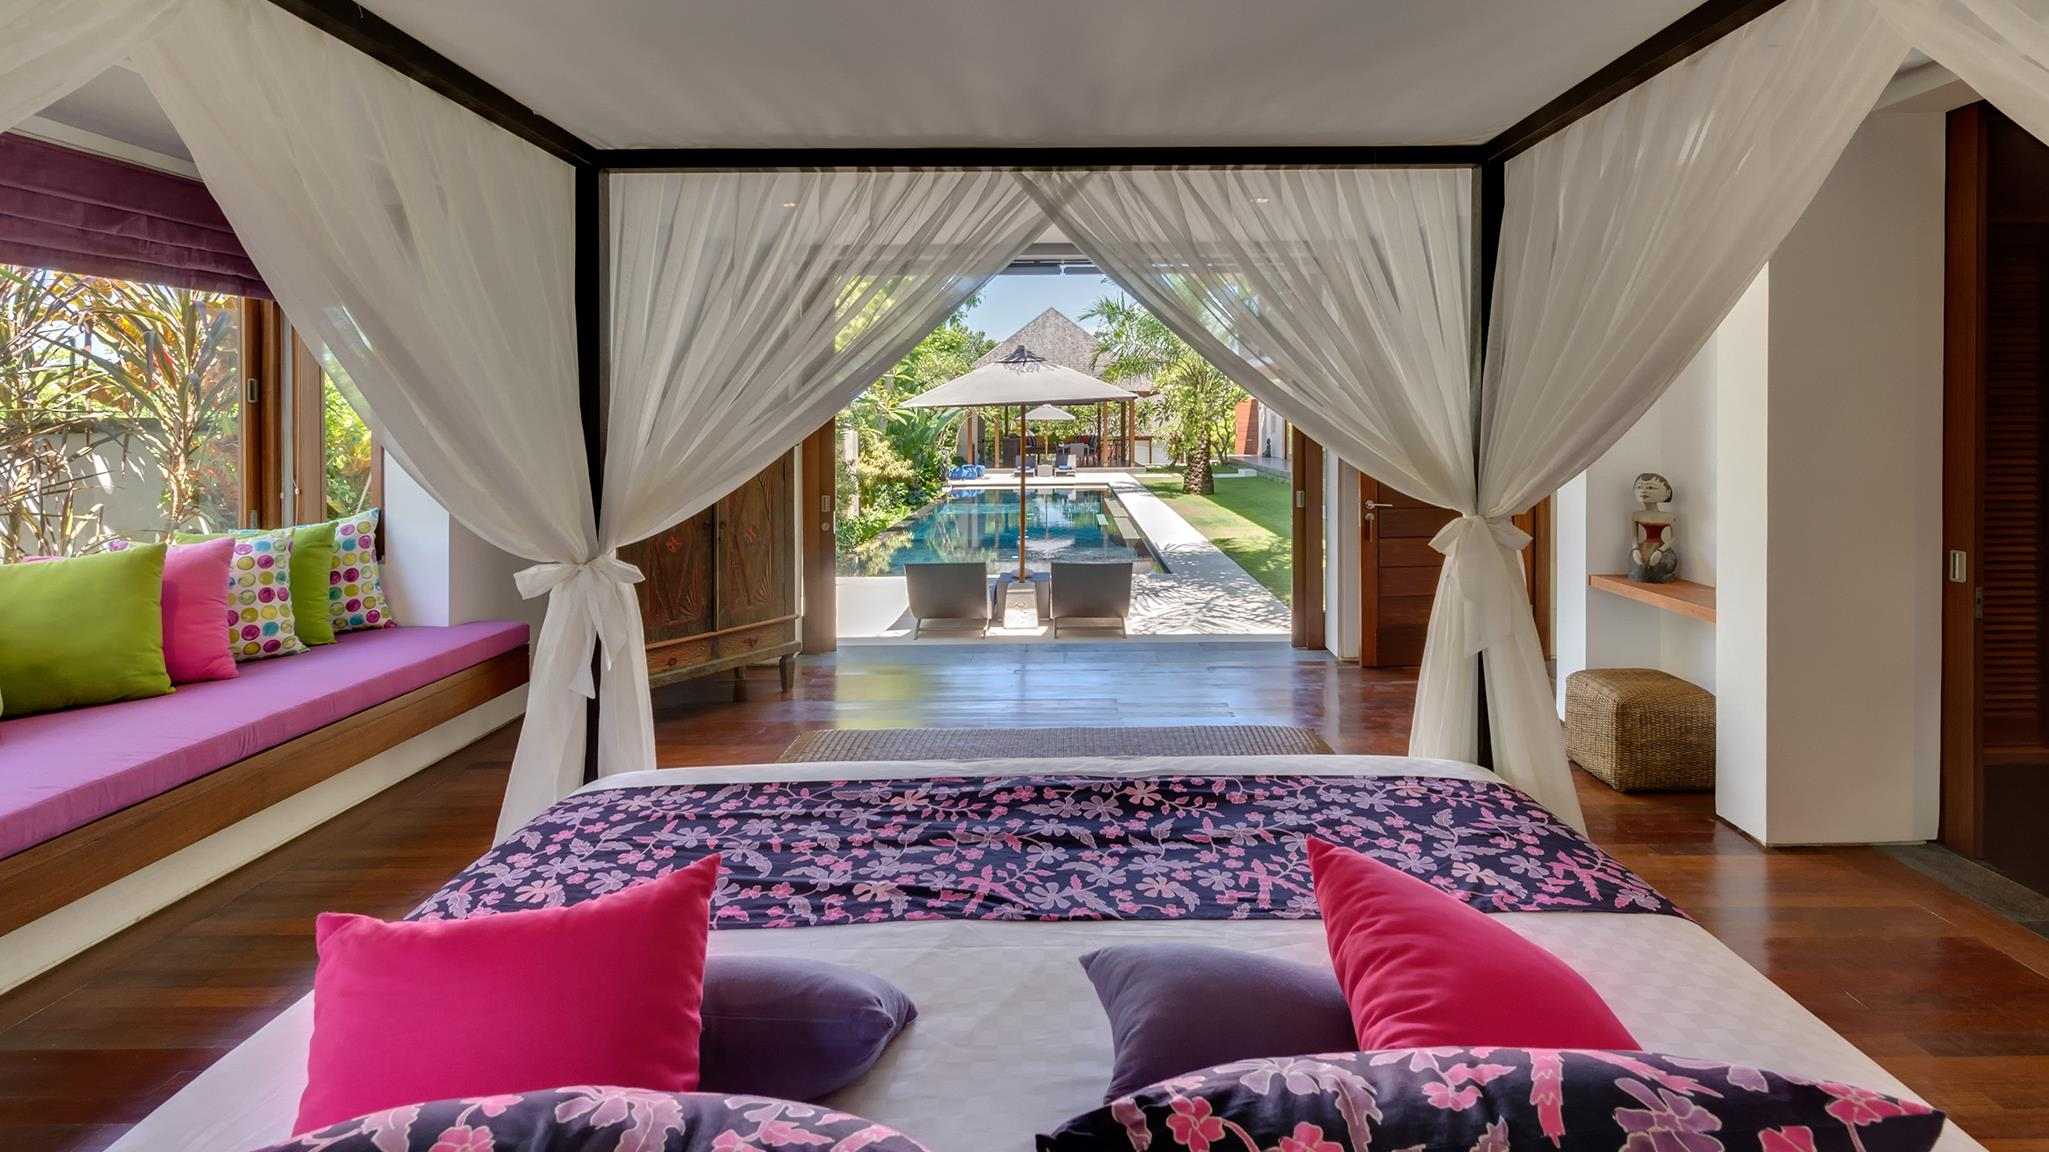 Bedroom with Pool View - Villa Bendega Rato - Canggu, Bali